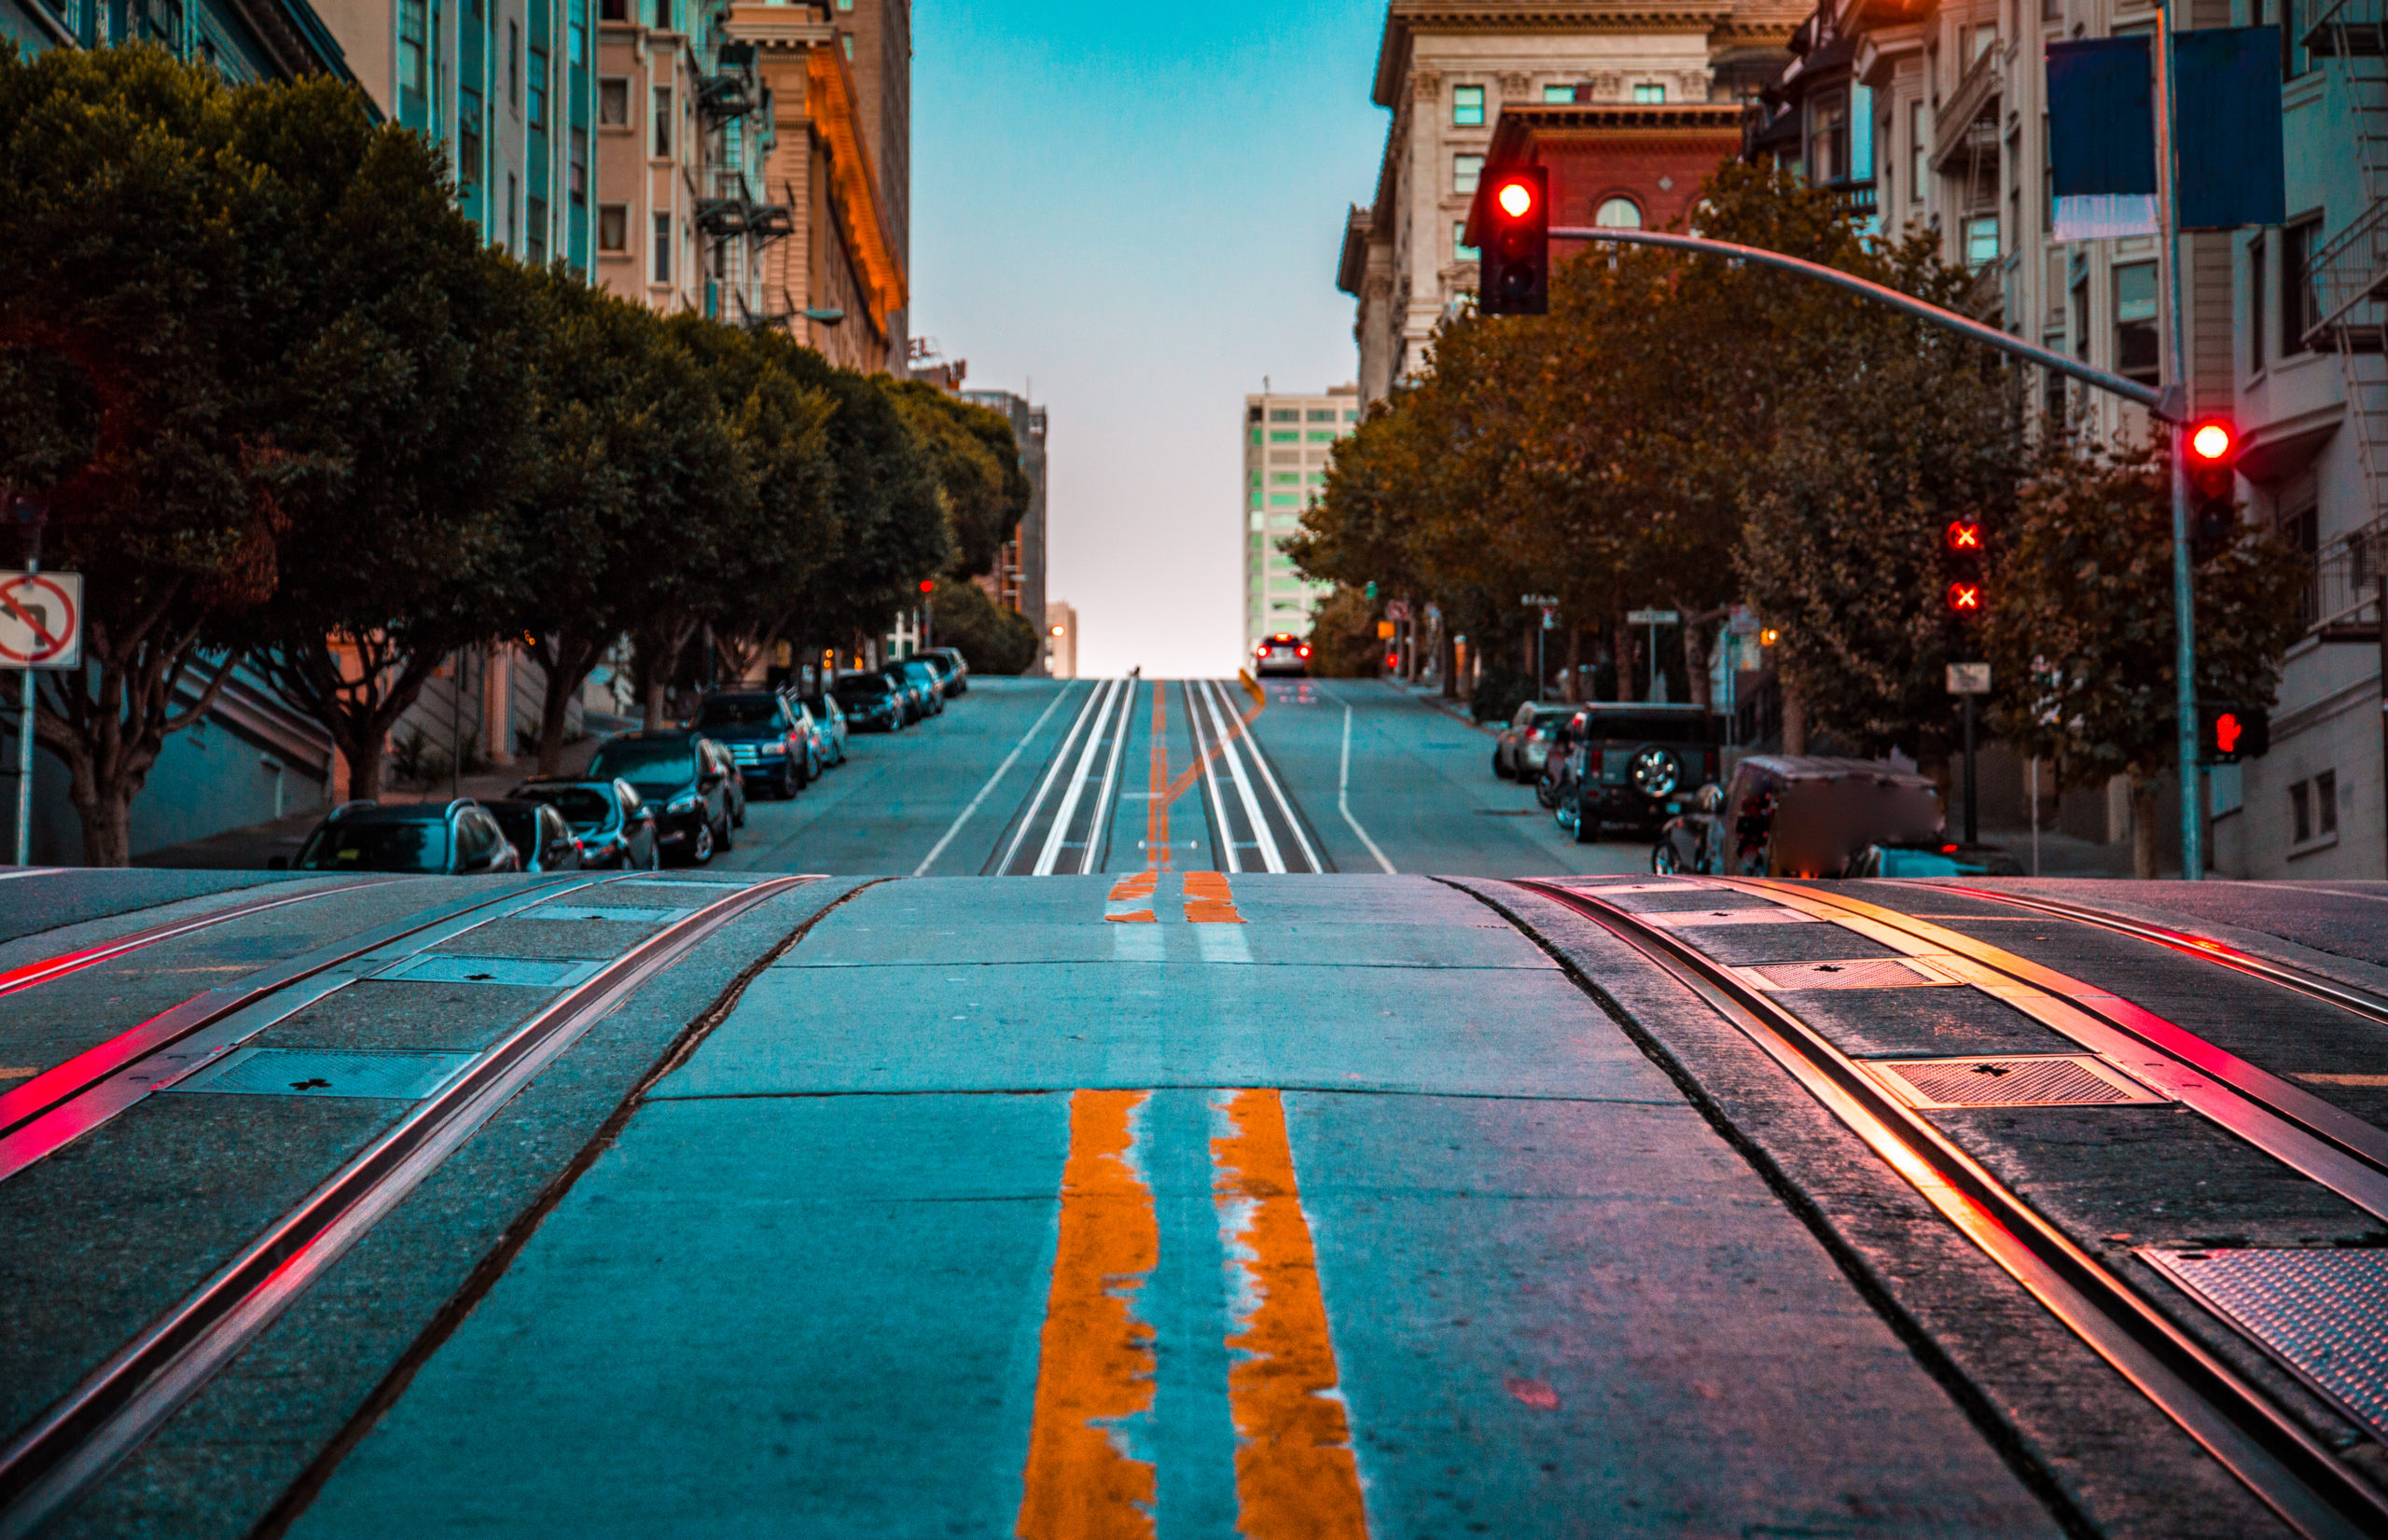 Uphill shot of San Francisco streets with cable car tracks